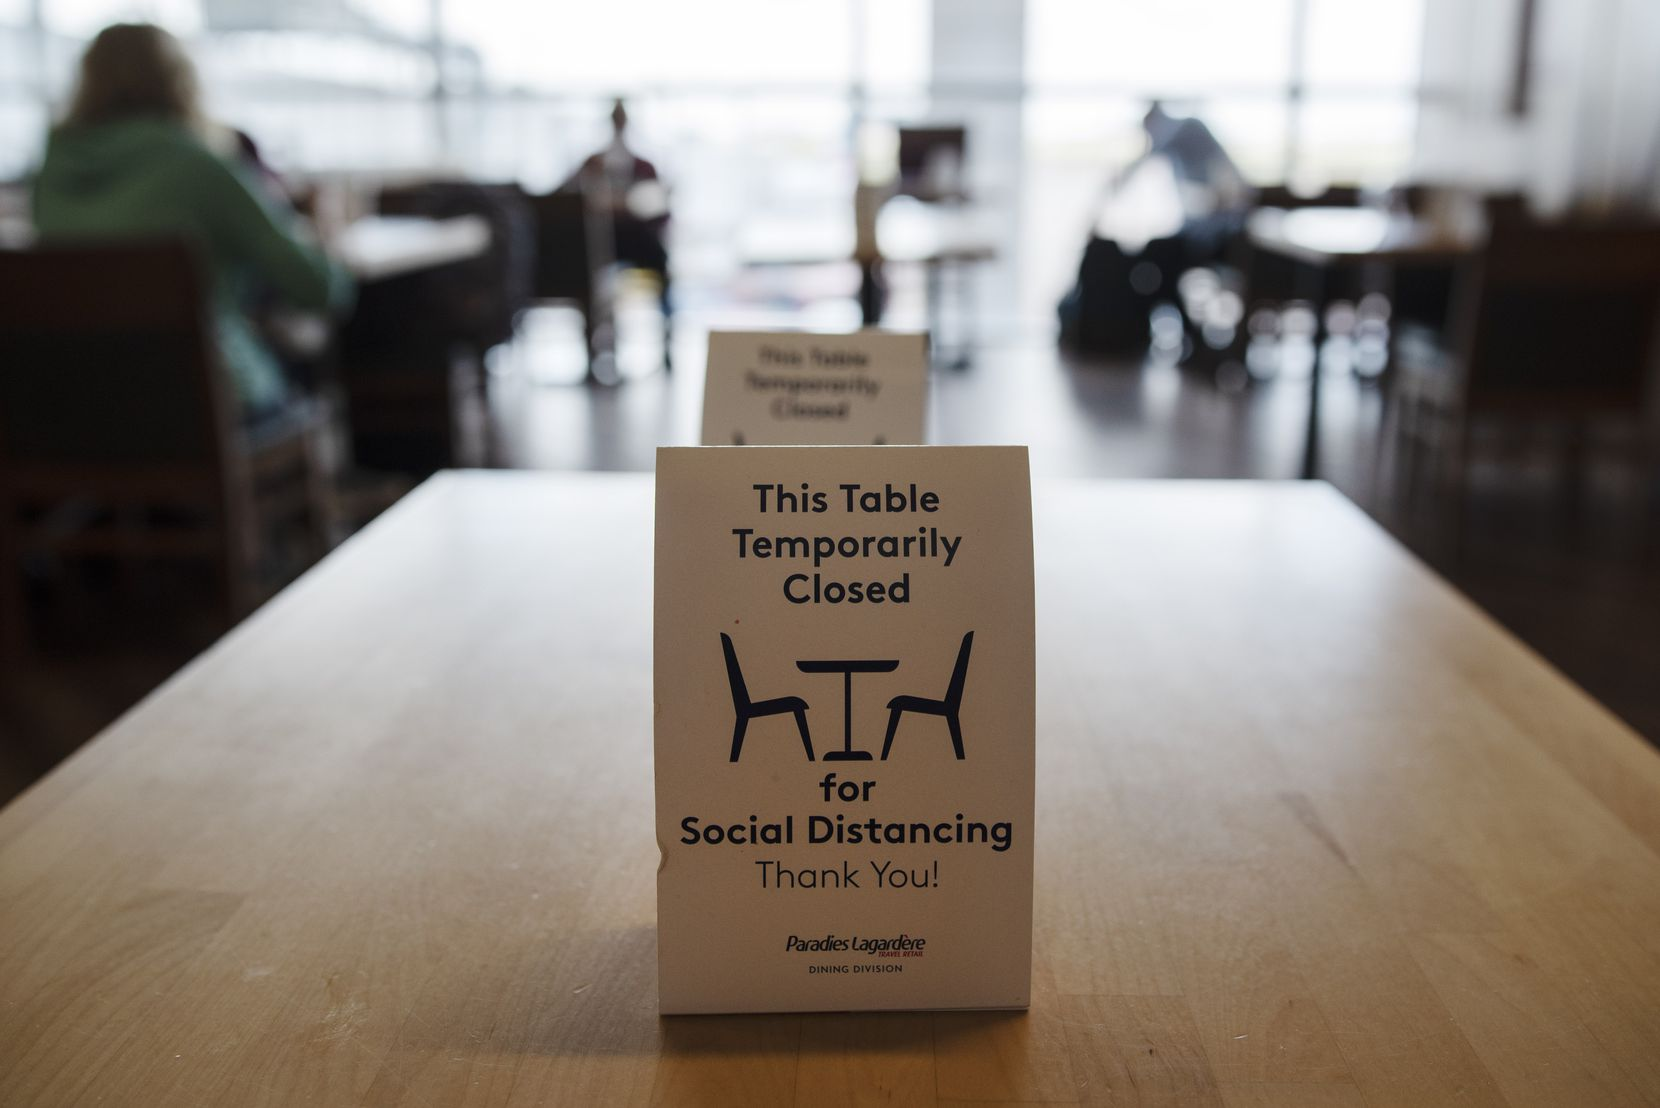 Social distancing signage at the Hickory restaurant inside Terminal B at DFW International Airport last Thursday.